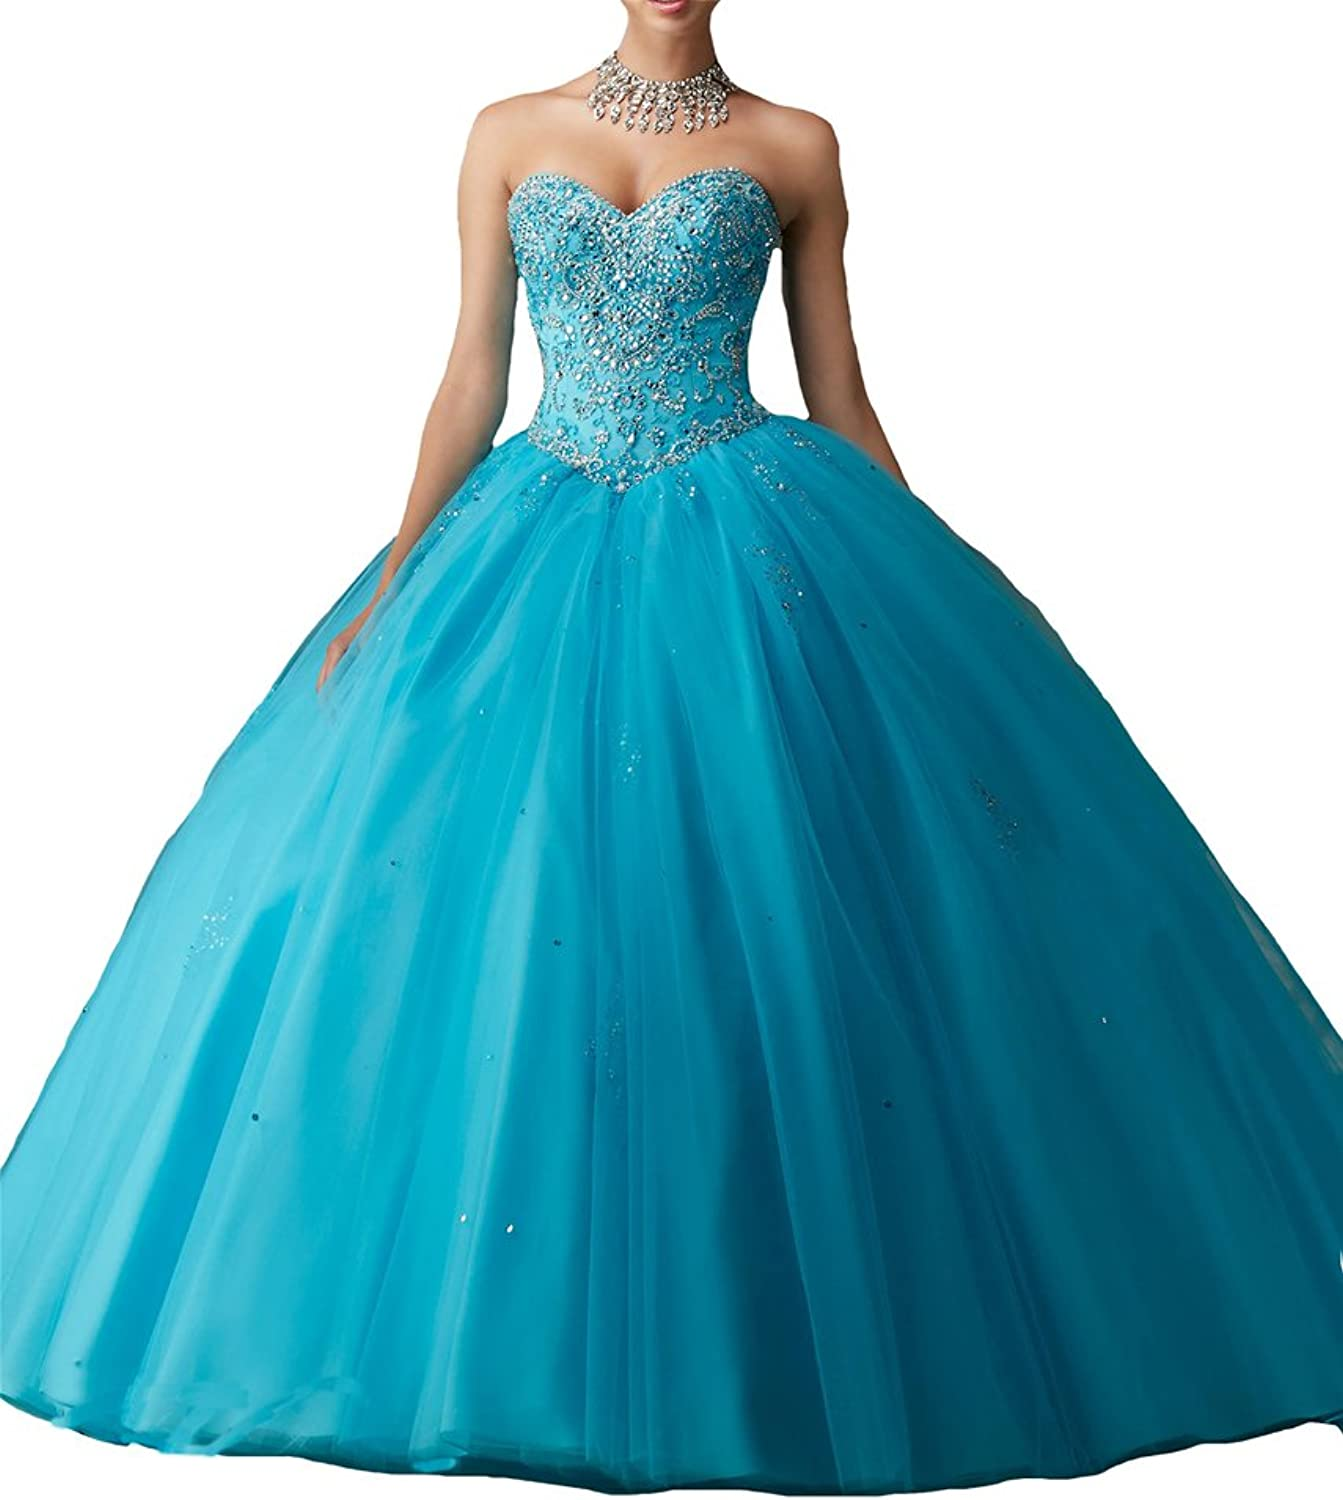 Yang Women Beaded Ball Gowns Girls Pageant Quinceanera Dresses Free Jacket